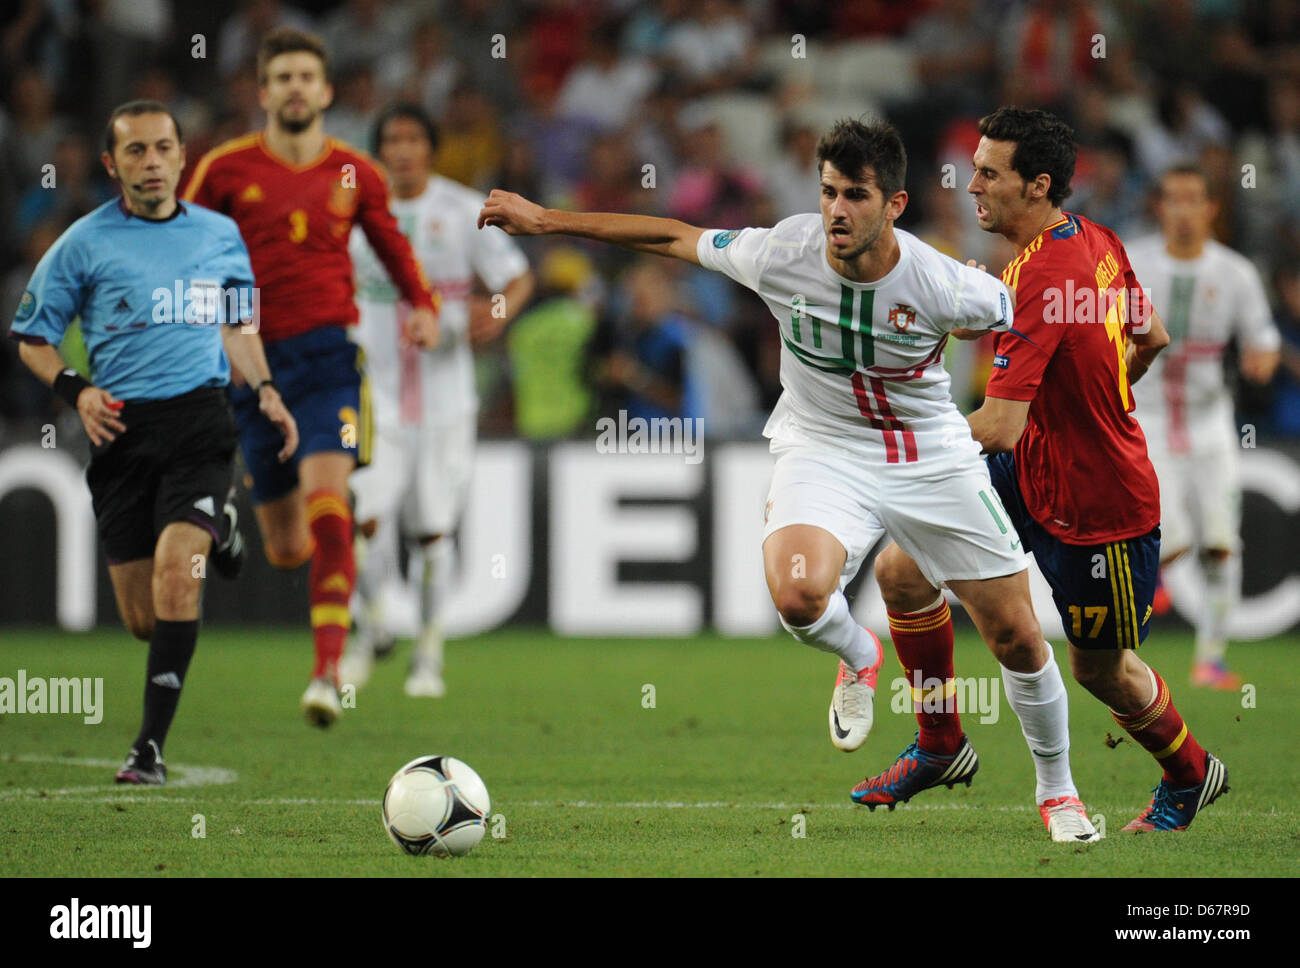 Portugal's Nelson Olivera (L) and Spain's Alvaro Arbeloa (R) vie for the ball during UEFA EURO 2012 semi - Stock Image